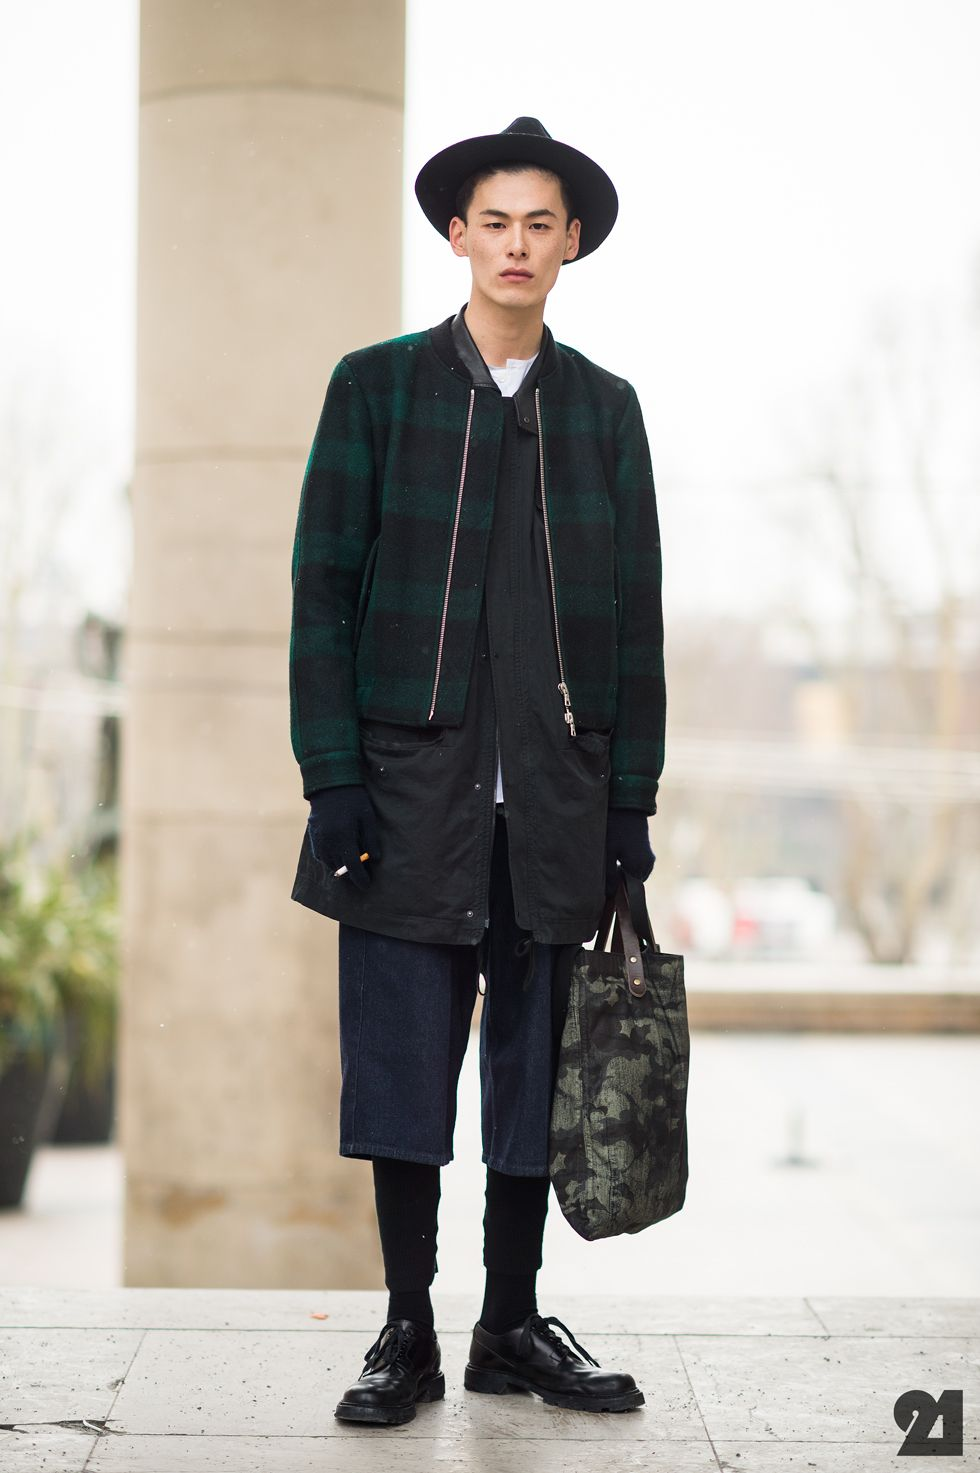 Korean Male Model Street Style Style M Pinterest